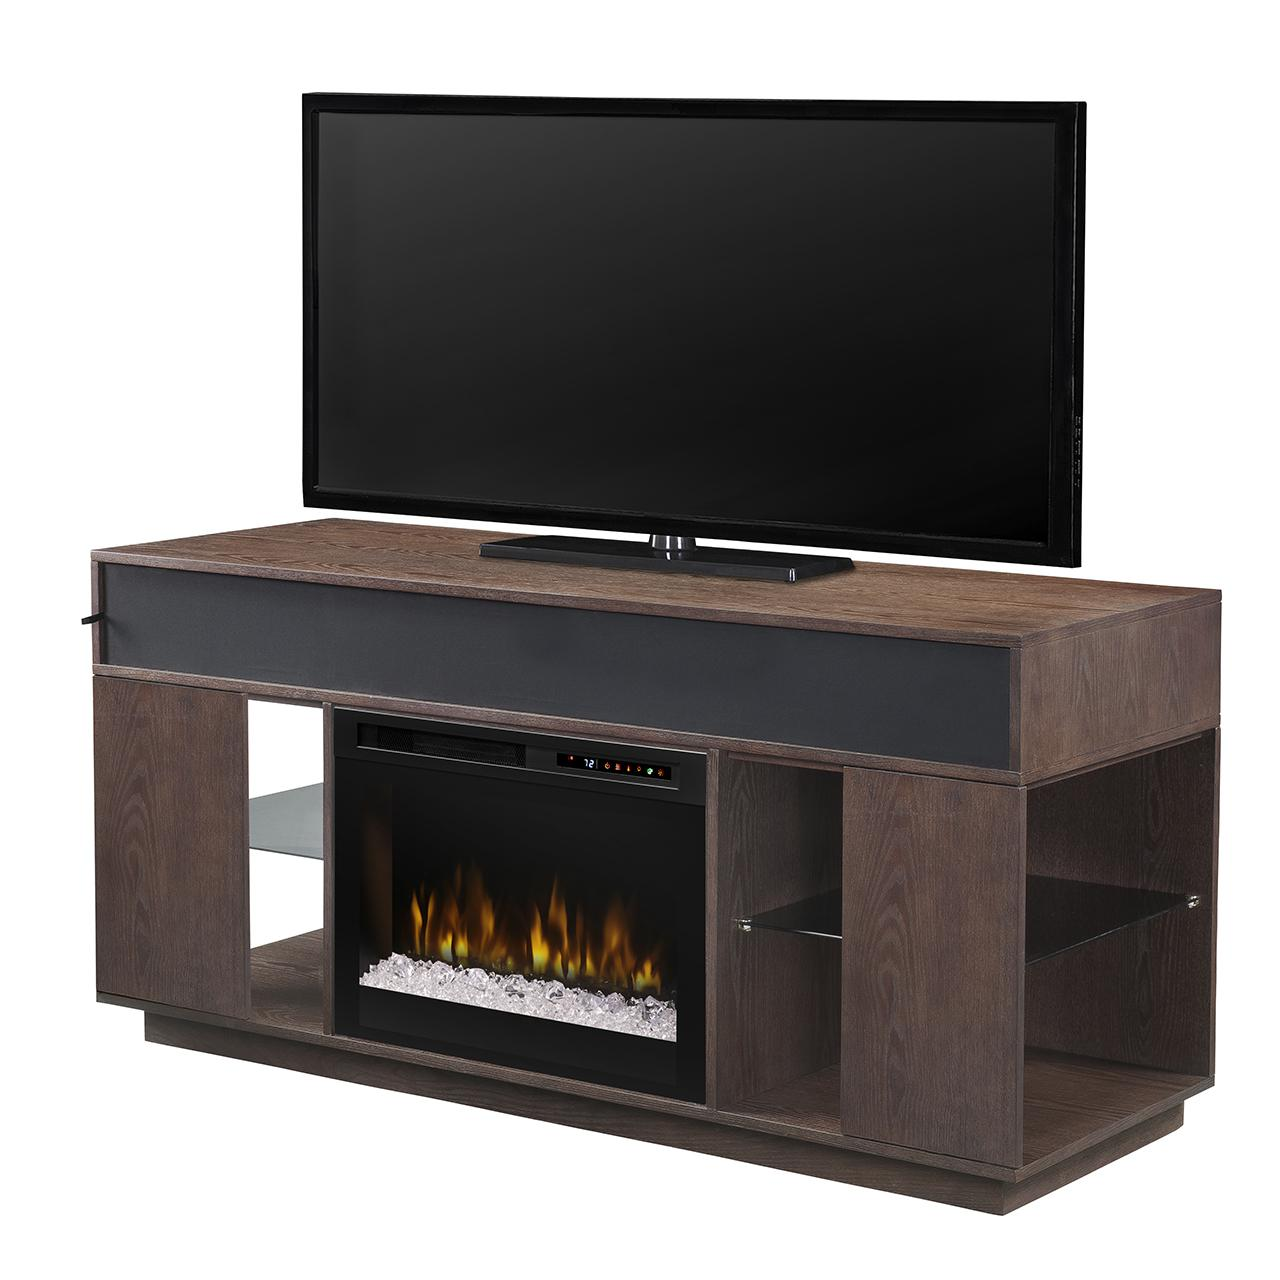 Dimplex Multi-Fire XHD Audio Flex Lex 64-Inch Electric Fi...